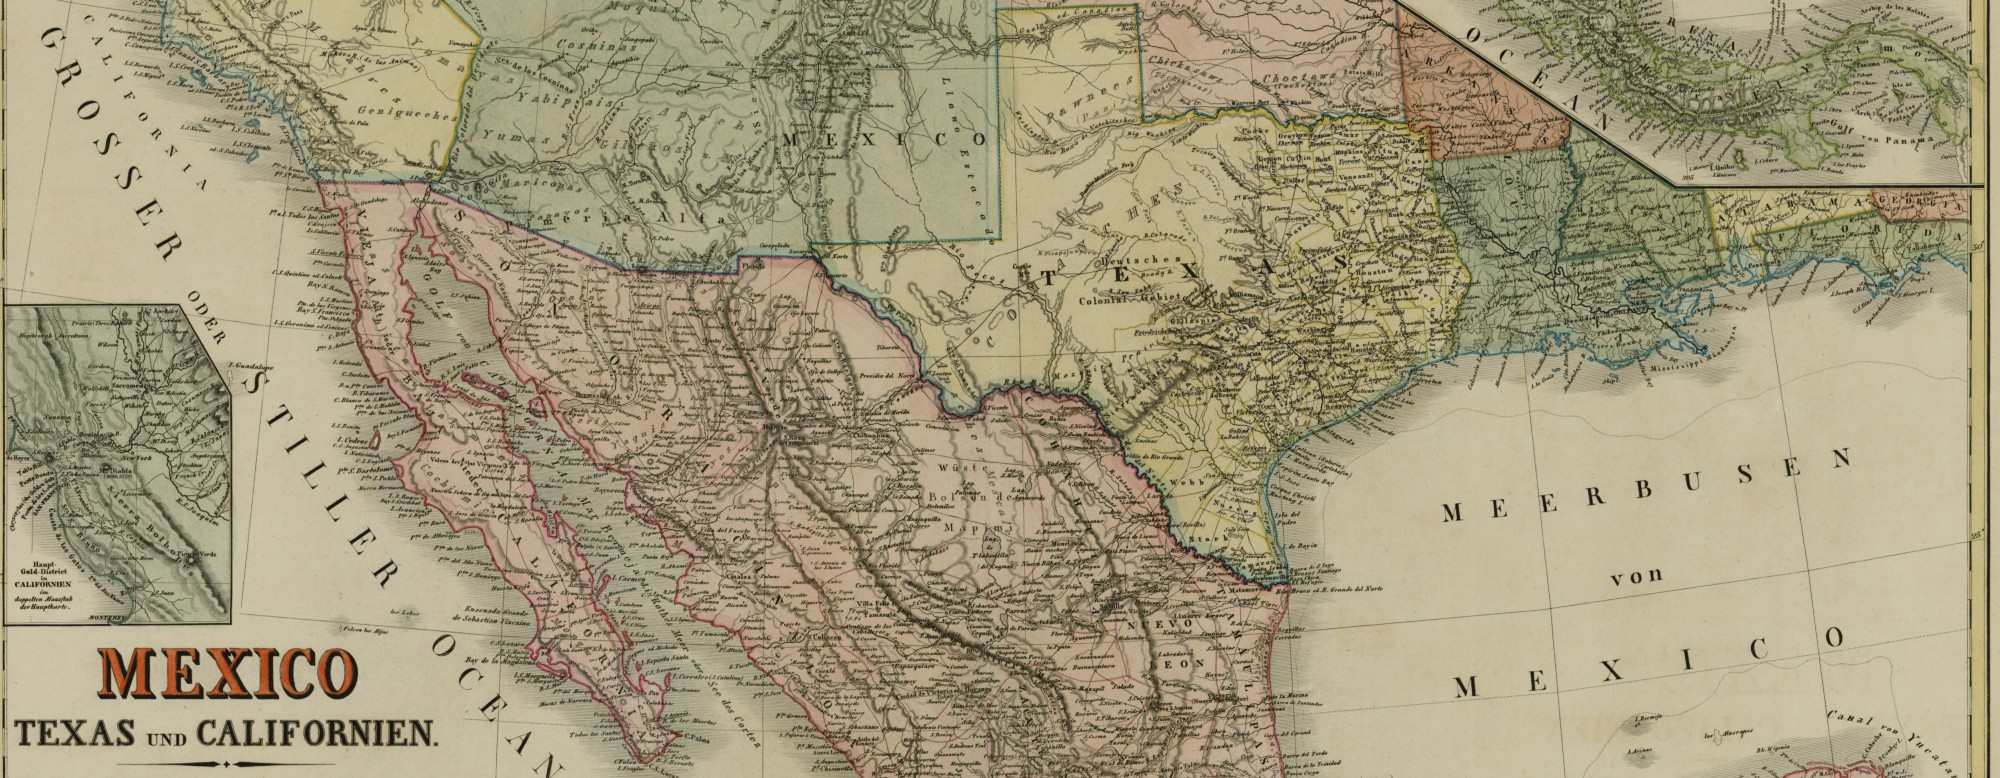 h kiepert mexico texas und californien 1855 weimar germany map 93651 map collection archives and records program texas general land office